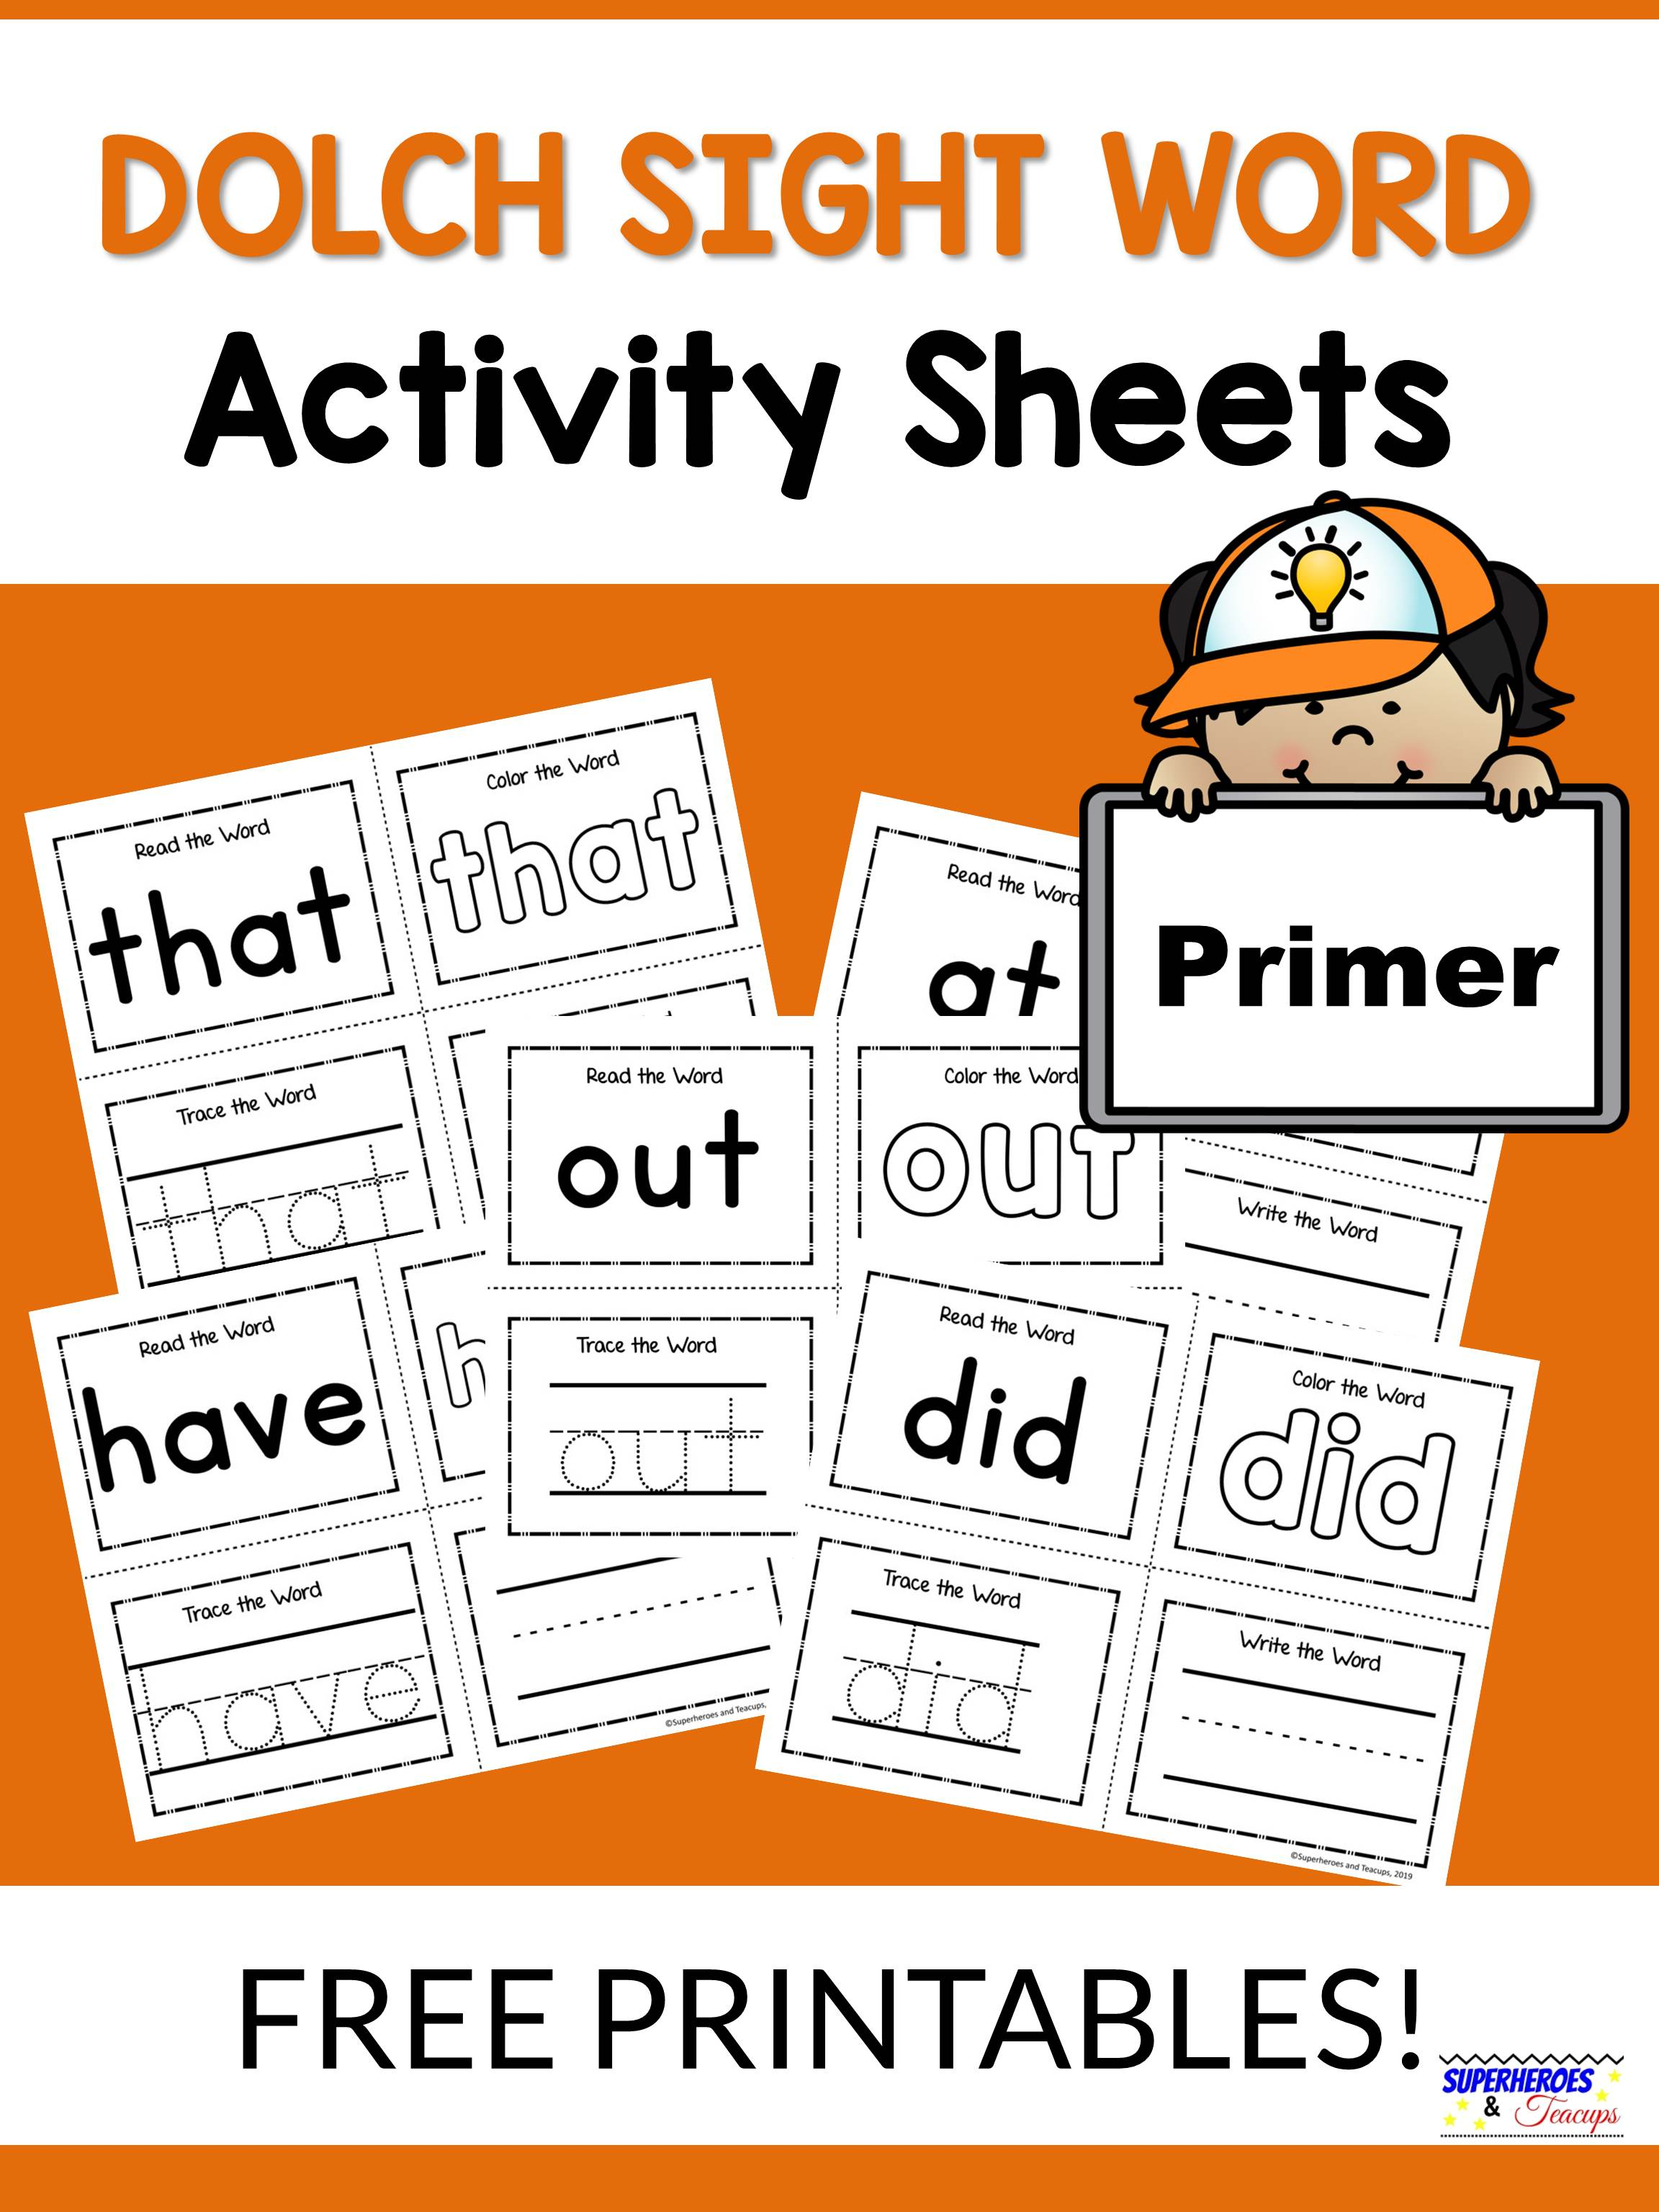 Primer Dolch Sight Word Activity Sheets